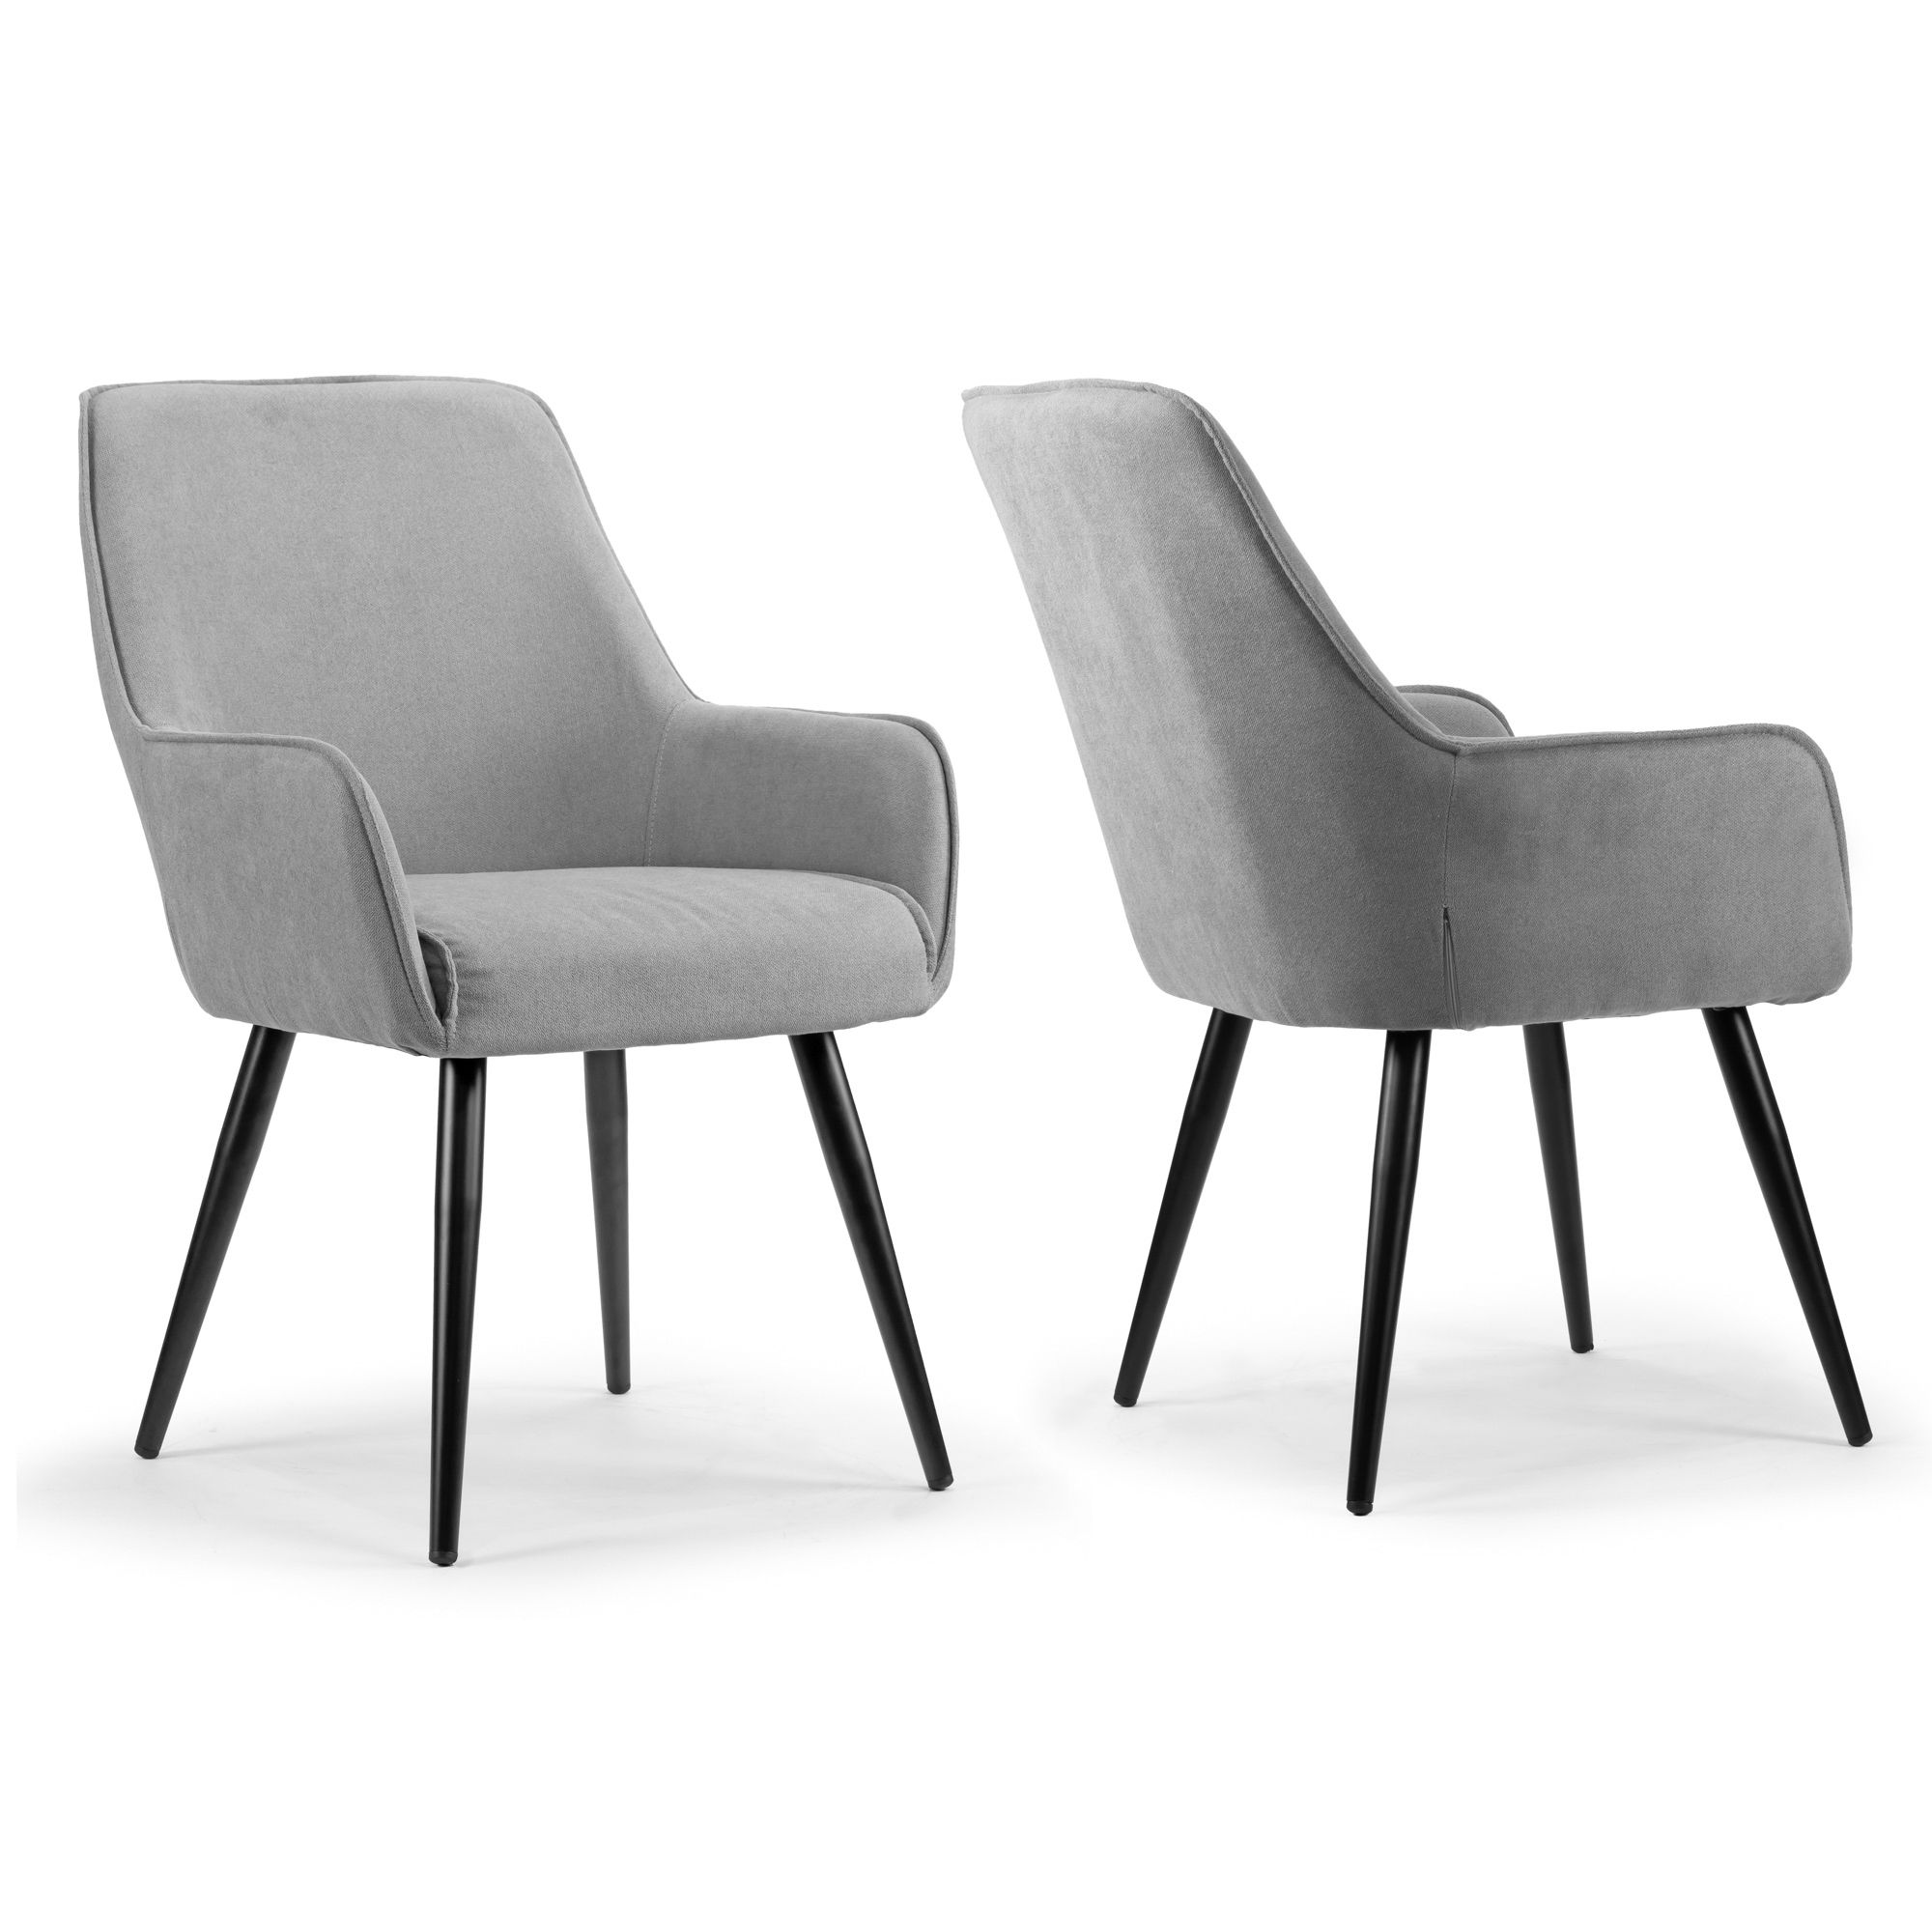 Amir Grey Fabric Dining Chair With Black Metal Legs And Square